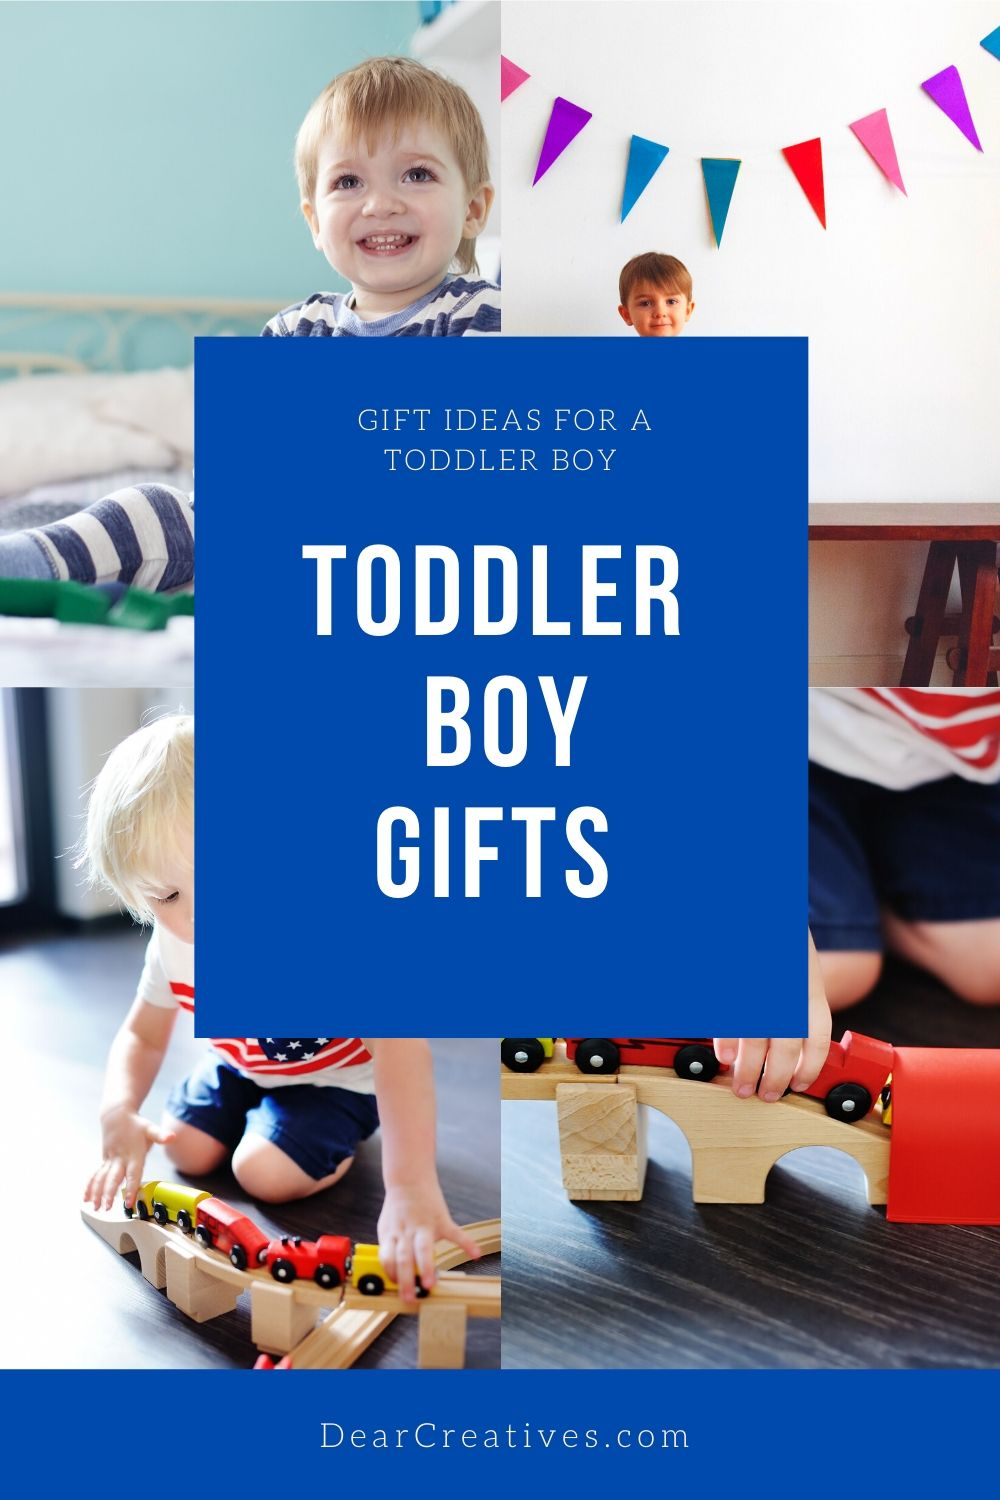 Toddler Boy Gifts - These gift ideas for boys will provide you with a selection of gifts to encourage creativity, playtime... DearCreatives.com